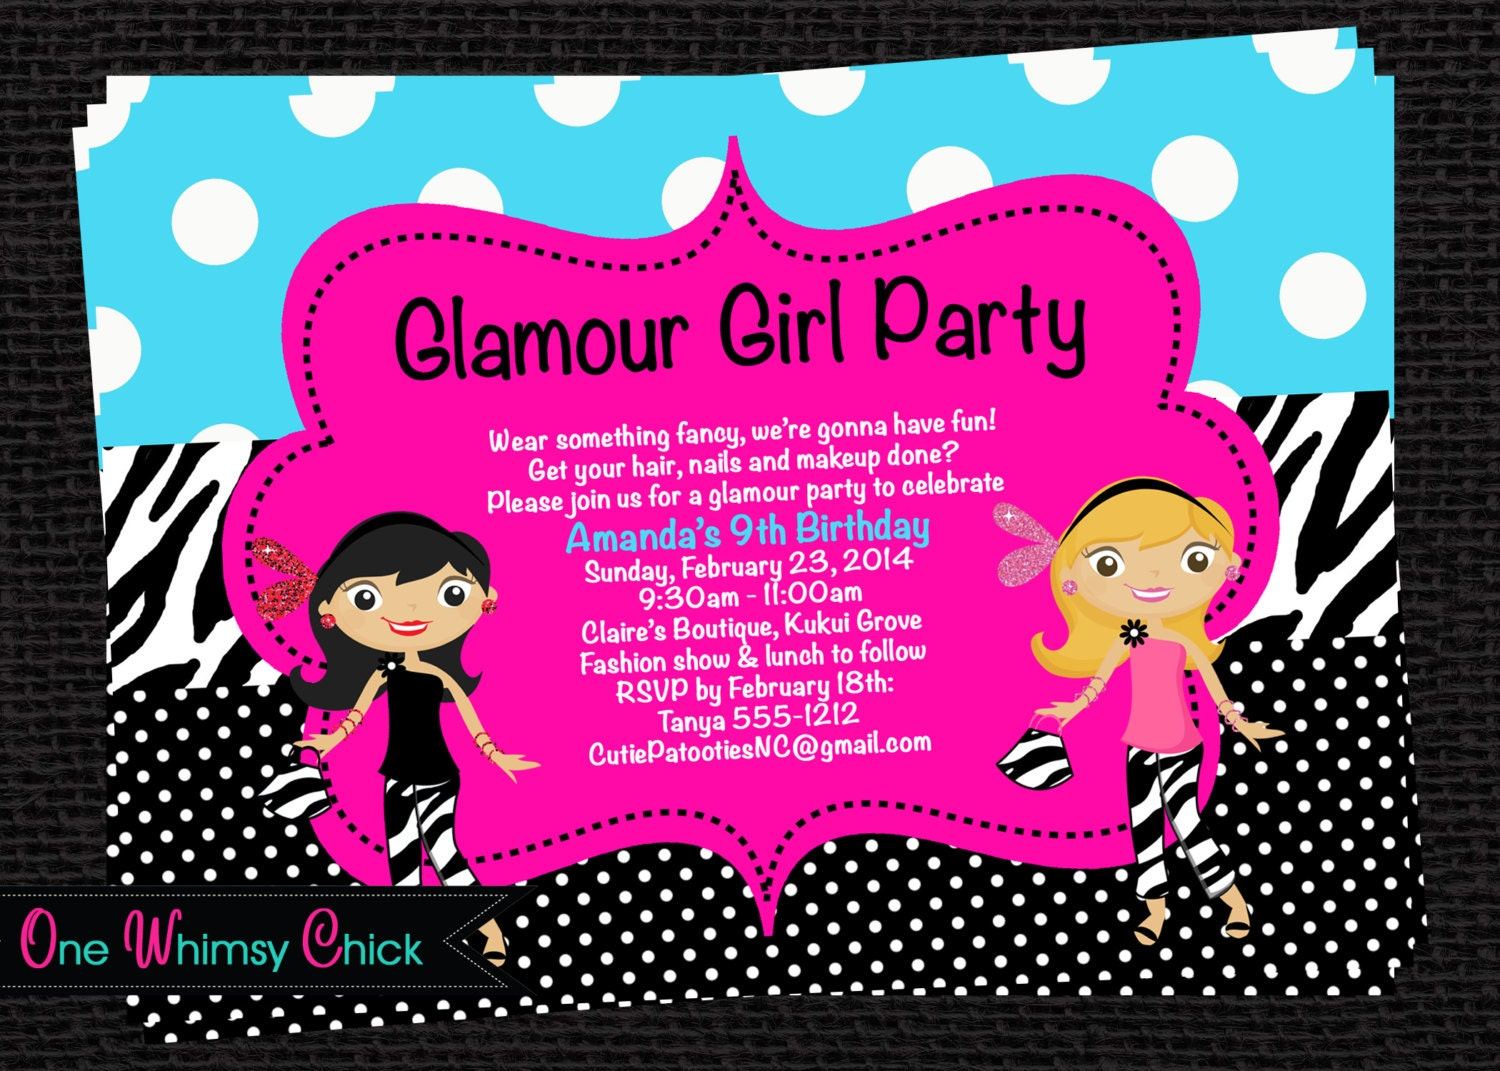 Glamour Girl Birthday Invitation Fashion Show By Onewhimsychick